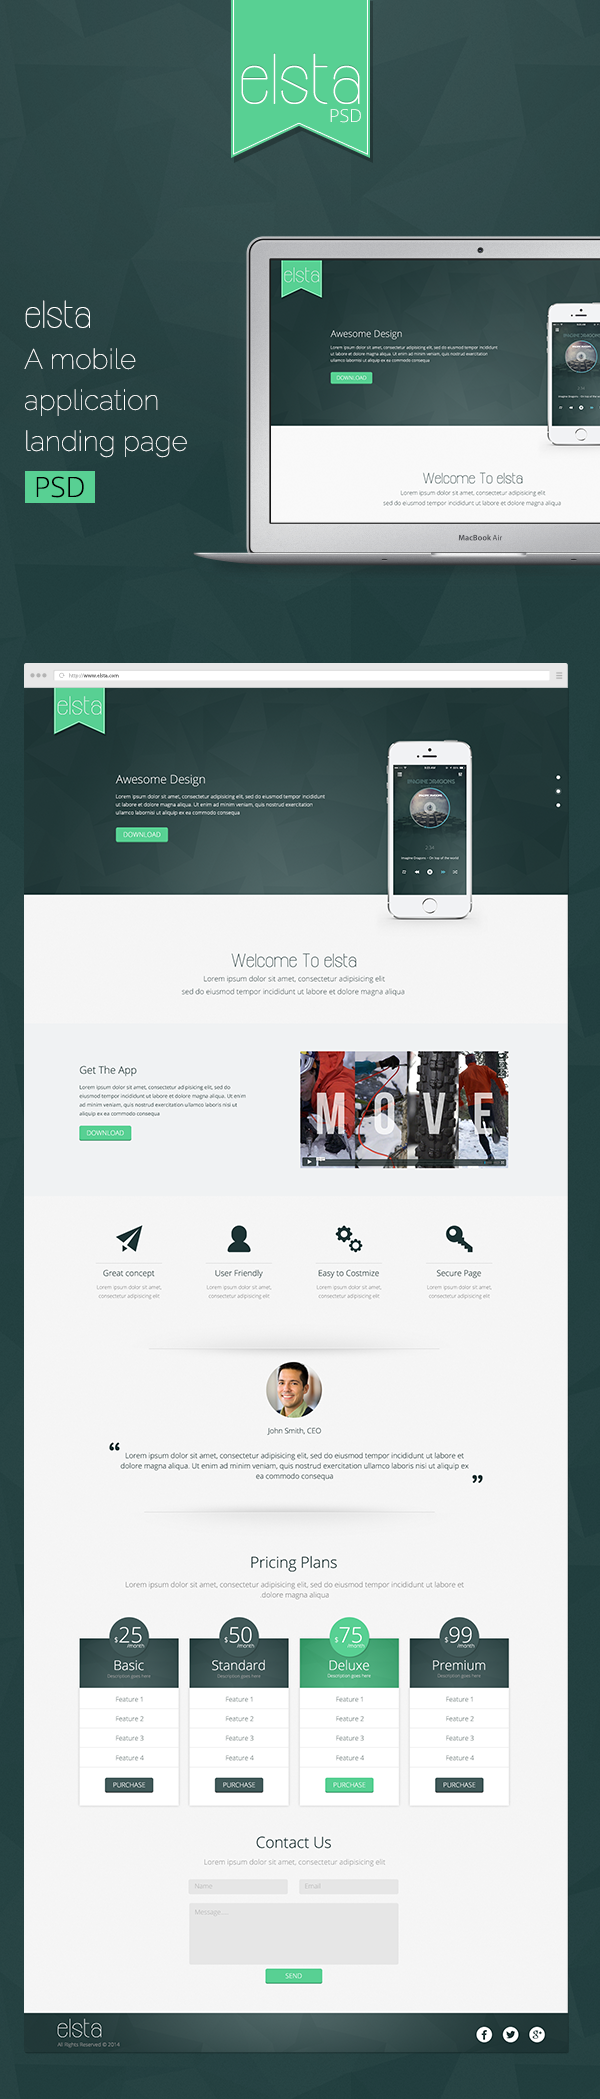 elsta - A mobile application landing page (FREE PSD) on Behance